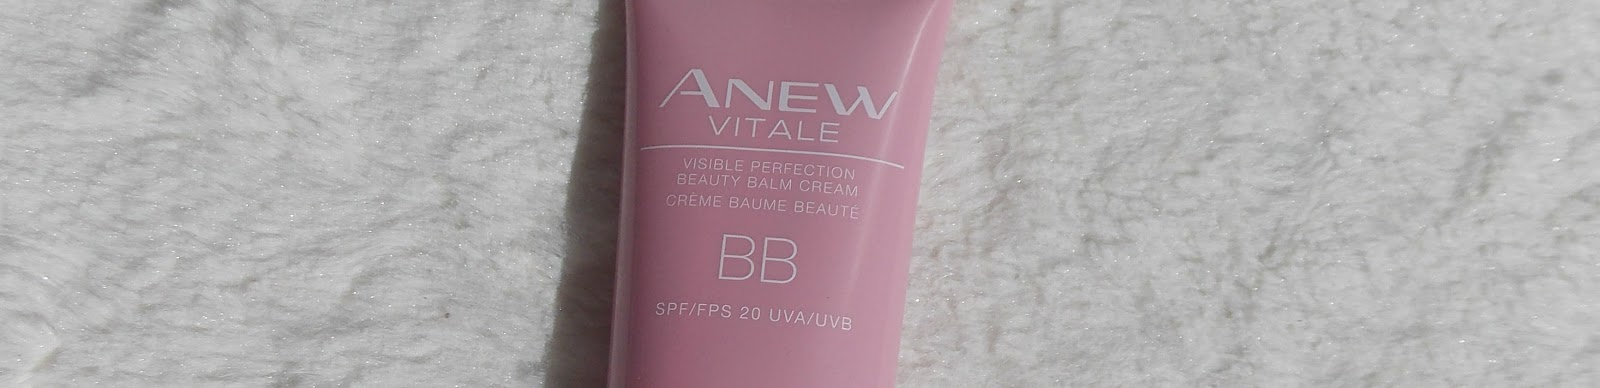 Avon Anew Vitale Visible Perfection - BB Cream.